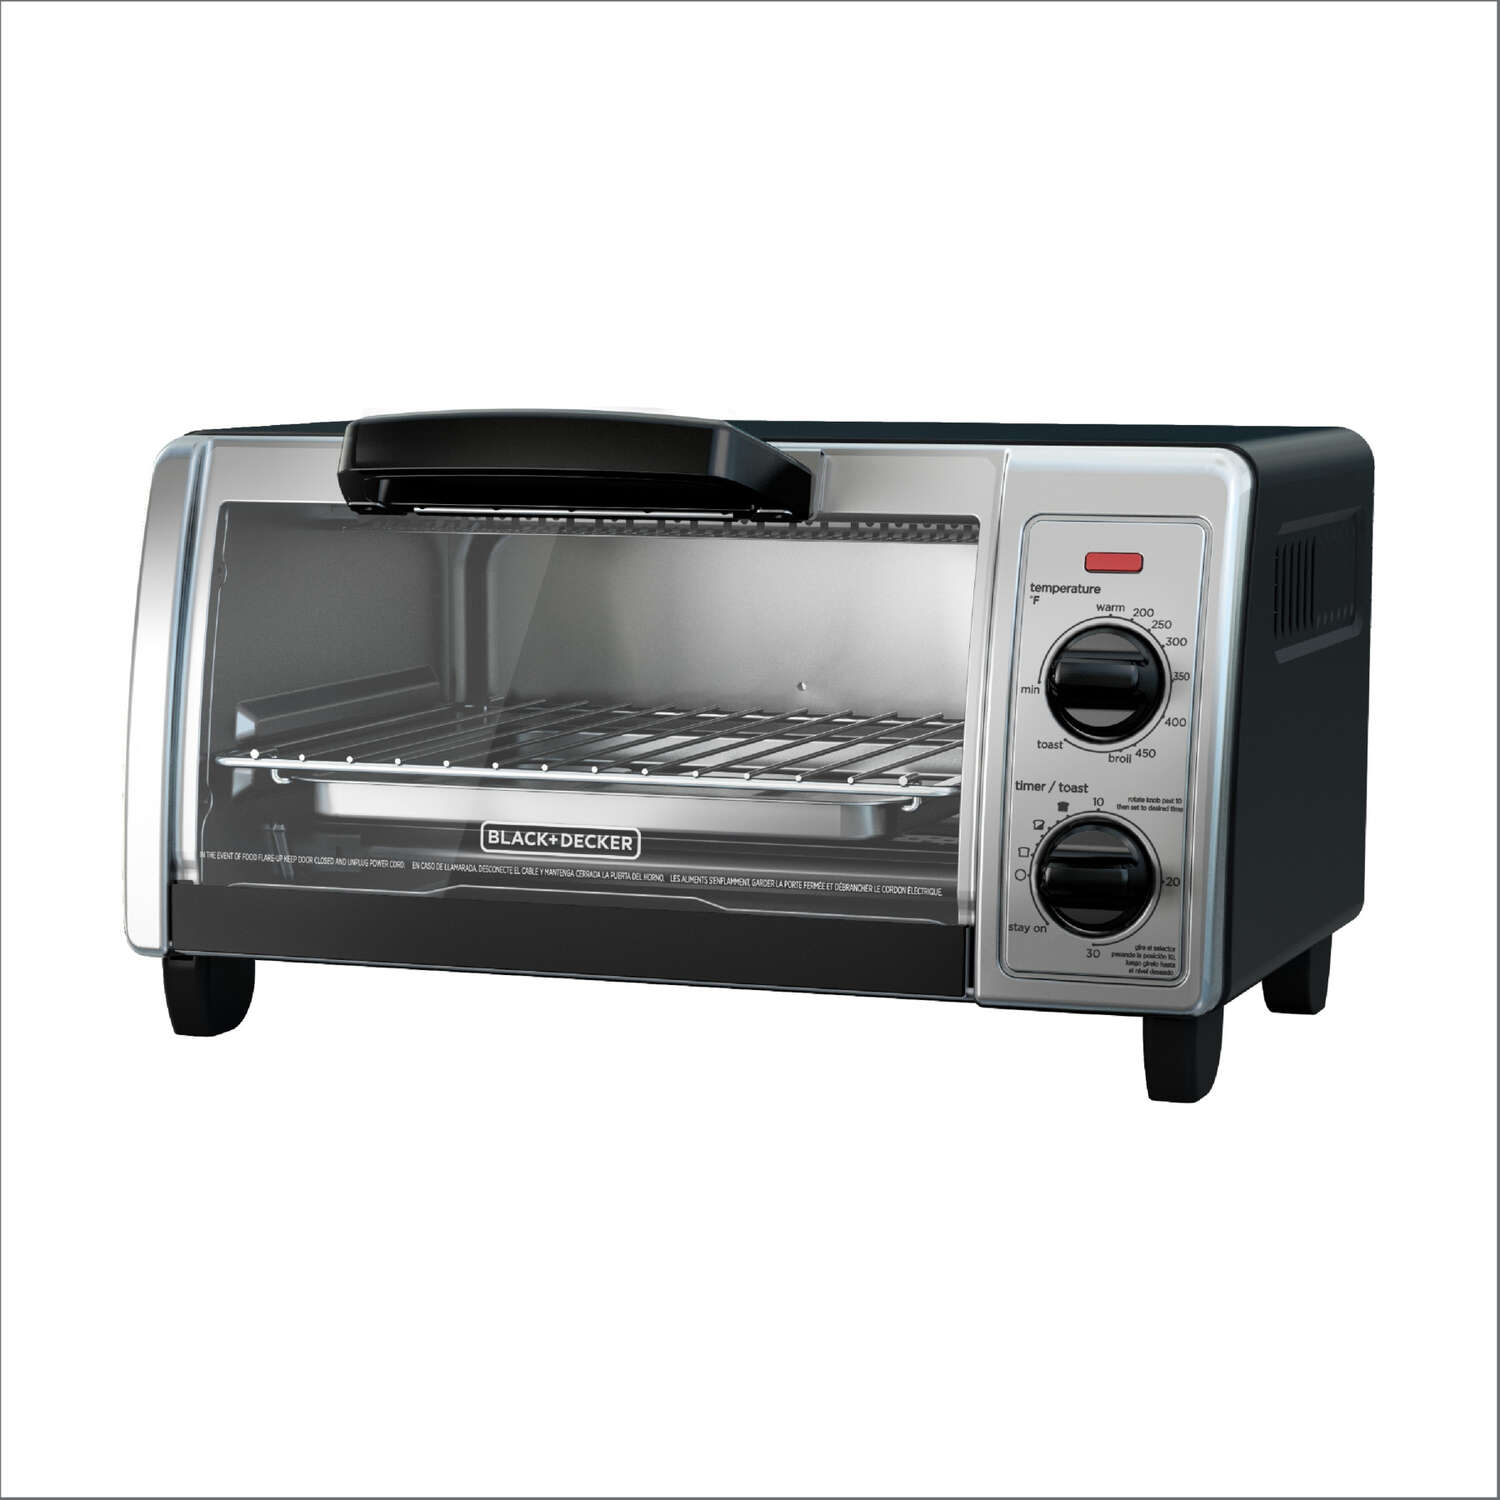 Black and Decker  Stainless Steel  Black/Silver  4 slot Convection Toaster Oven  9 in. H x 16.9 in.